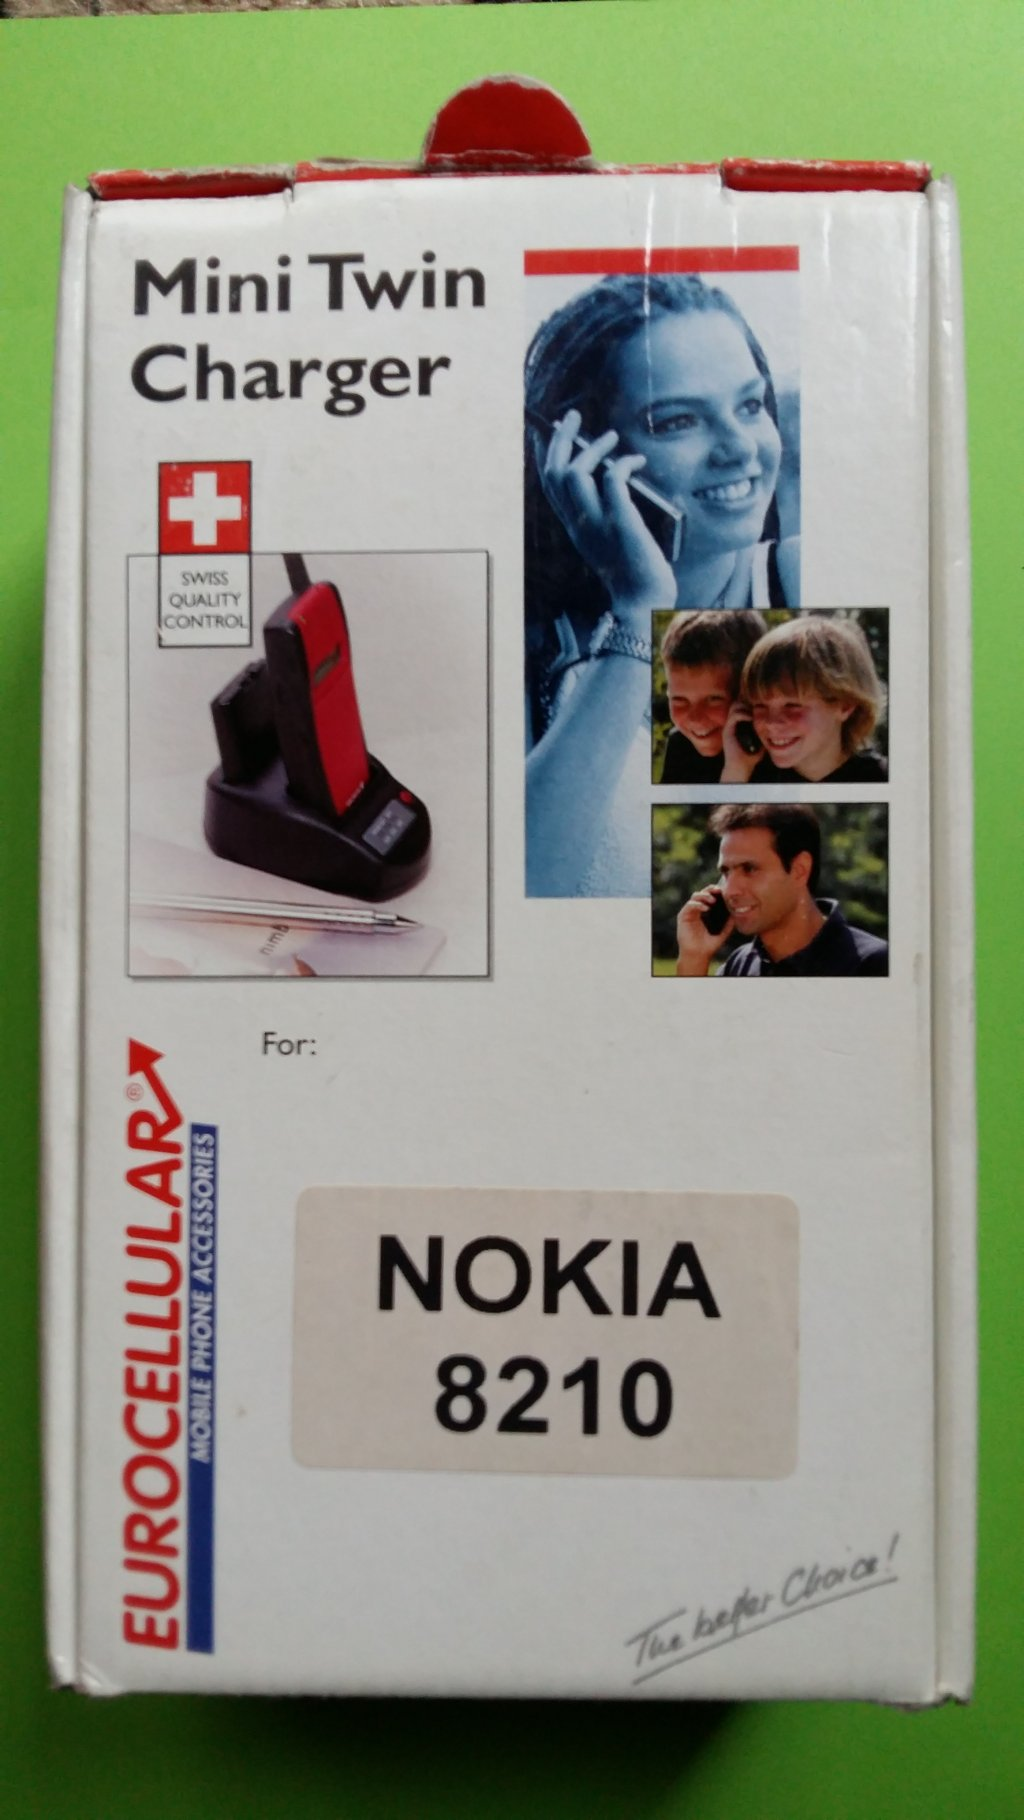 image-8185673-Nokia_Mini_Twin_Charger.w640.jpg